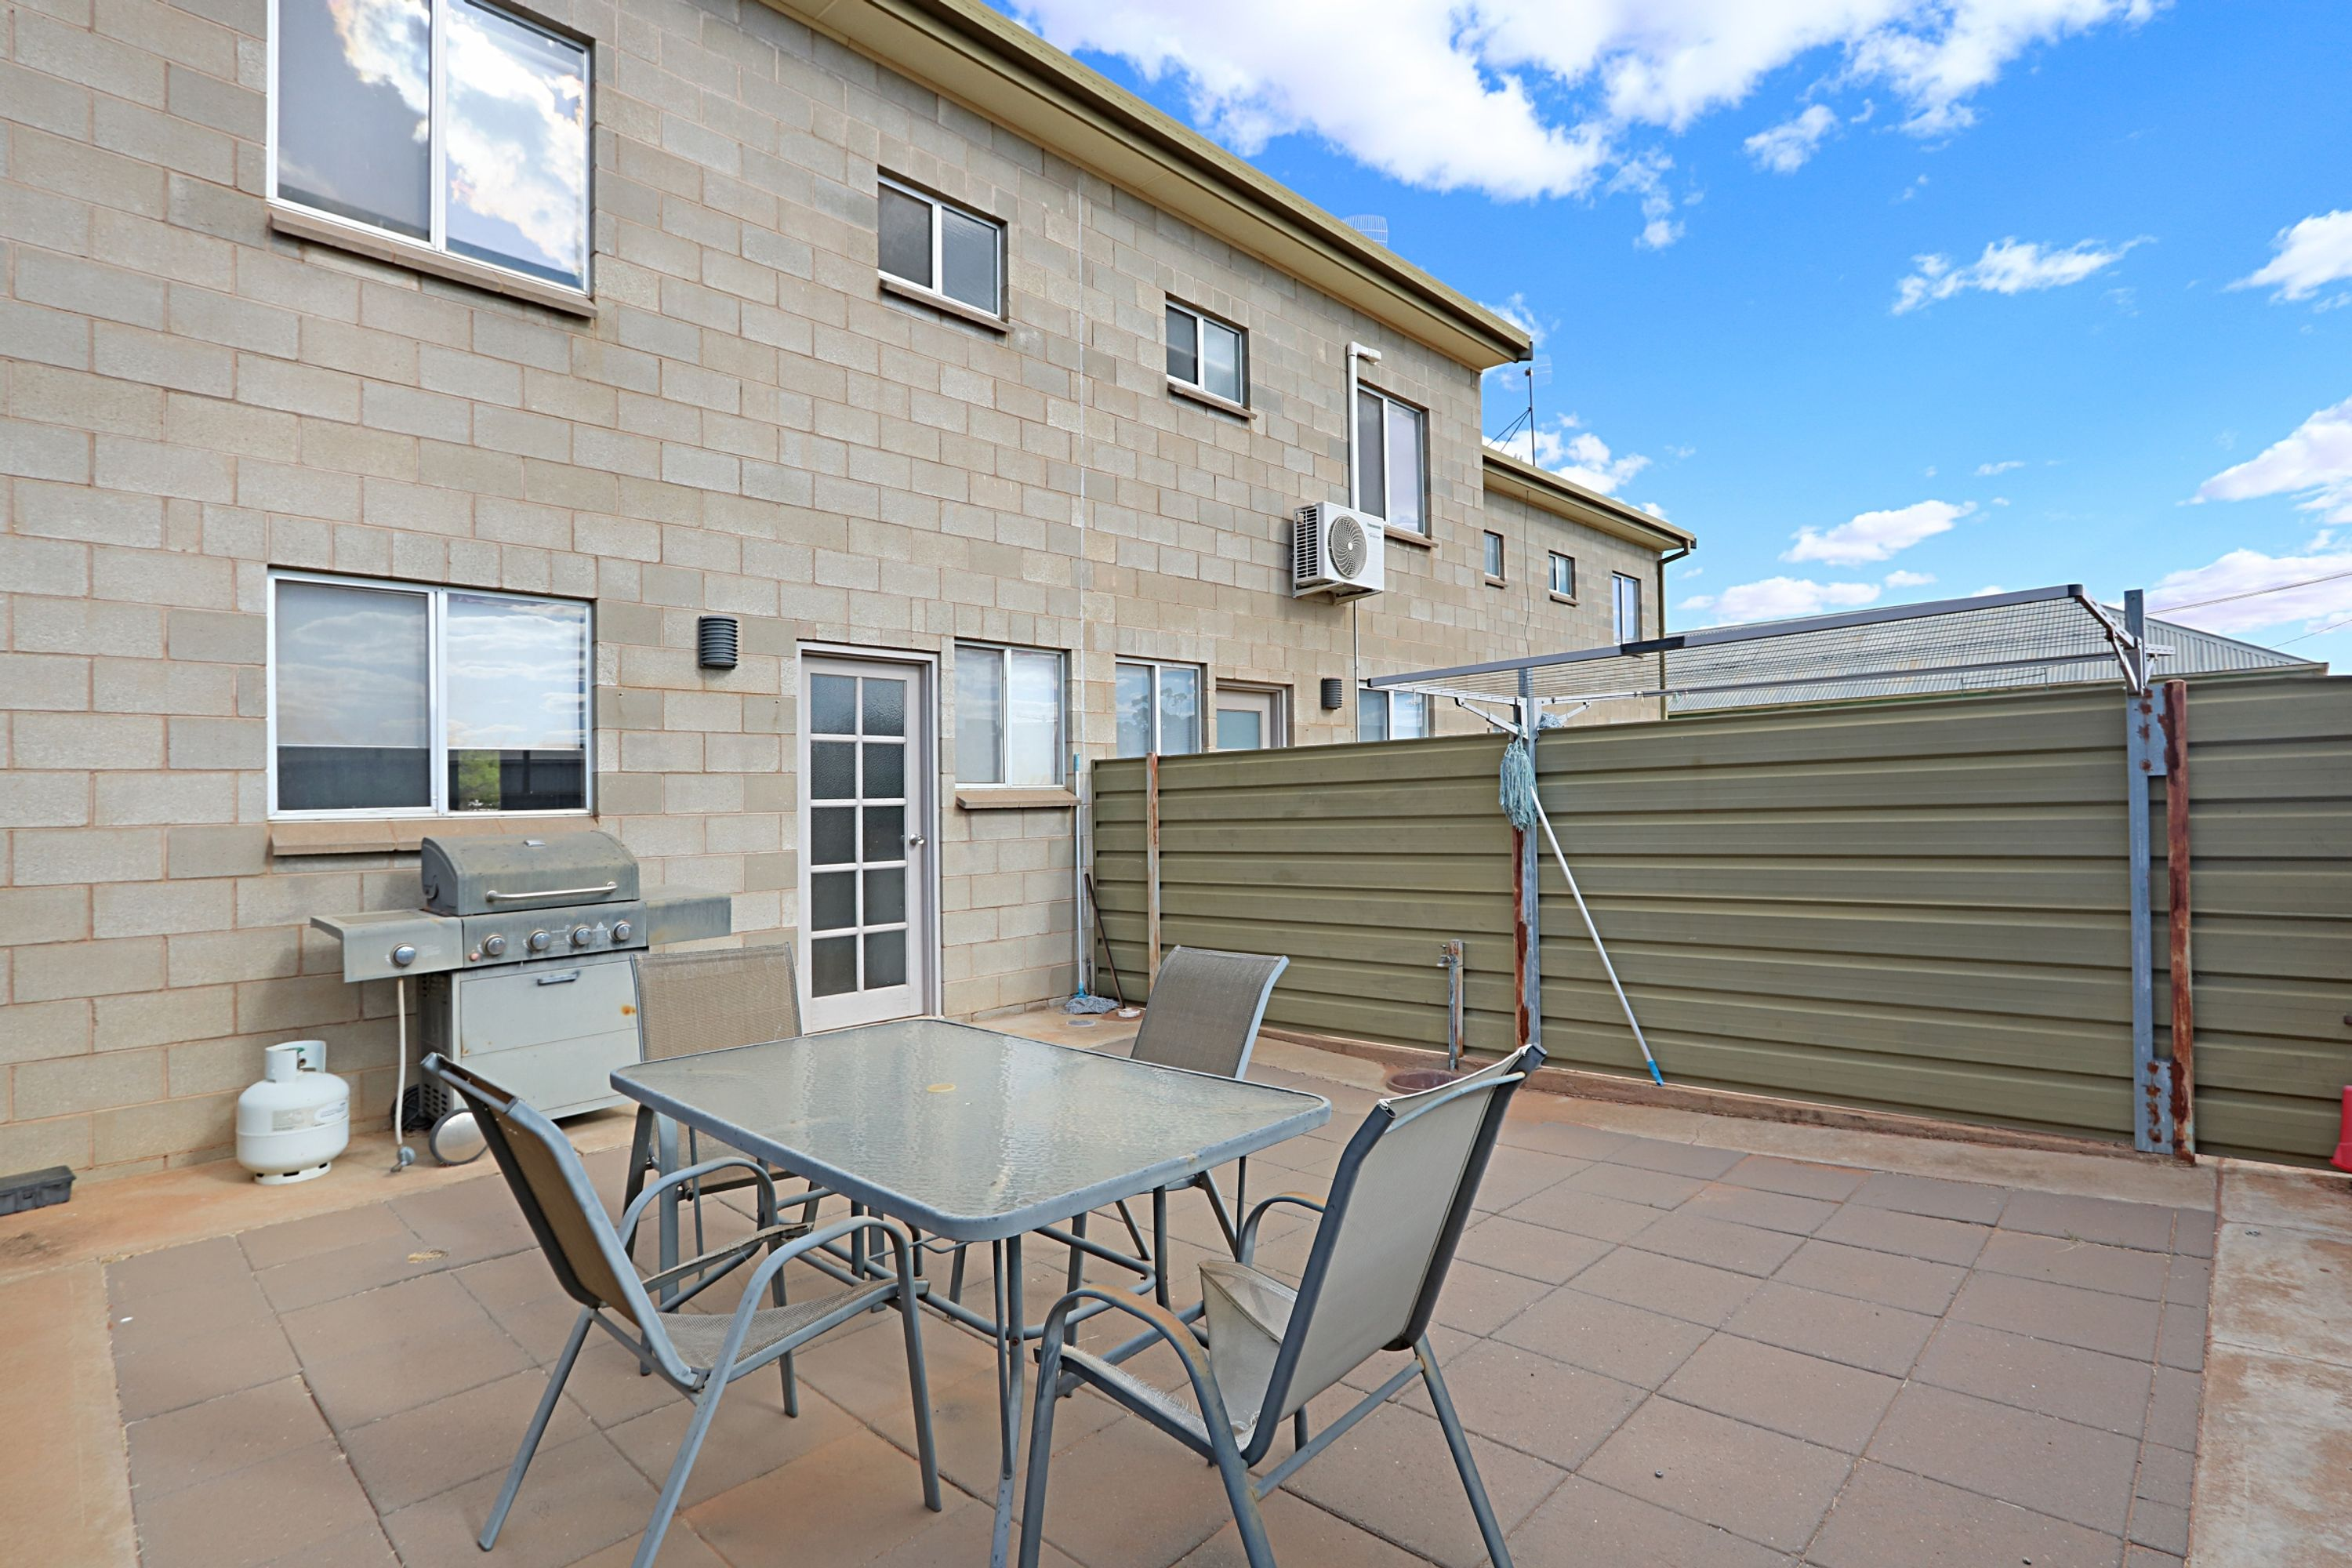 4/660 Blende Street, Broken Hill, NSW 2880